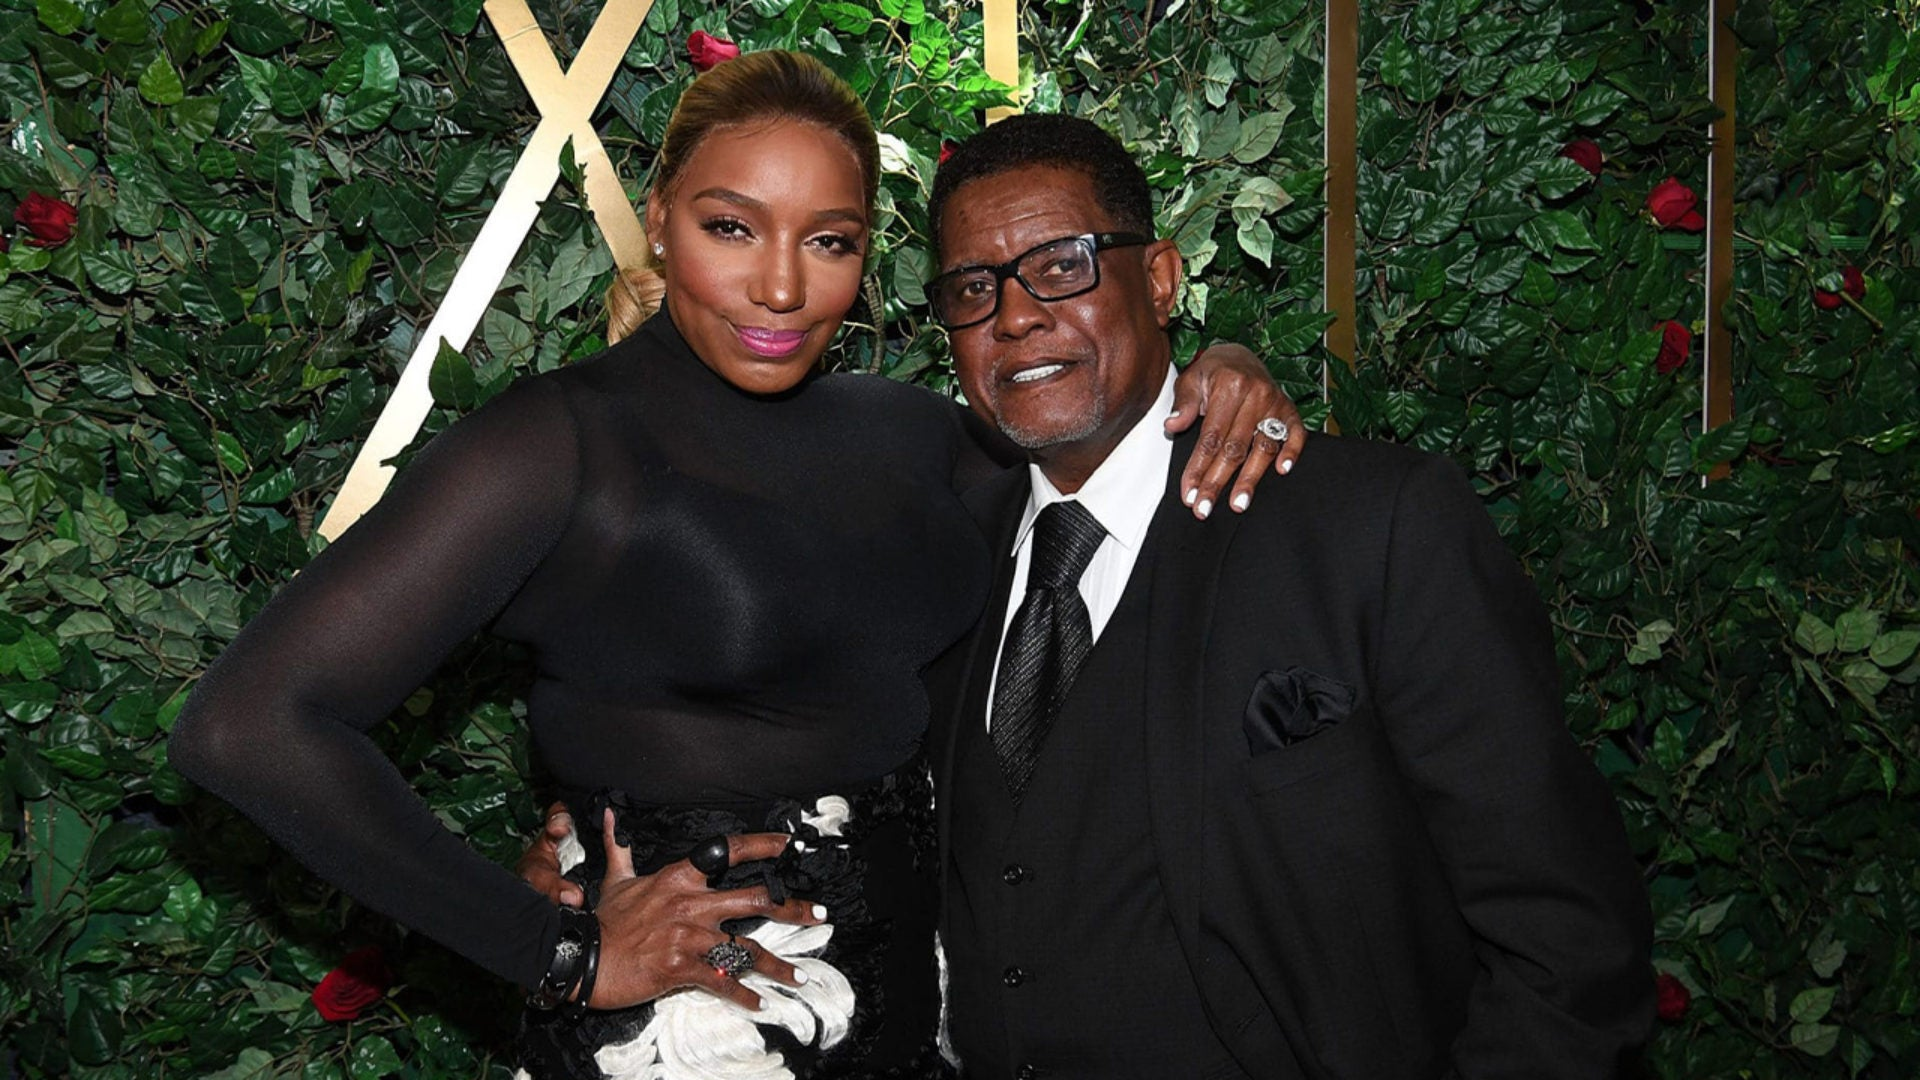 nene-leakes-makes-fans-excited-with-amazing-videos-featuring-gregg-leakes-for-their-23rd-anniversary